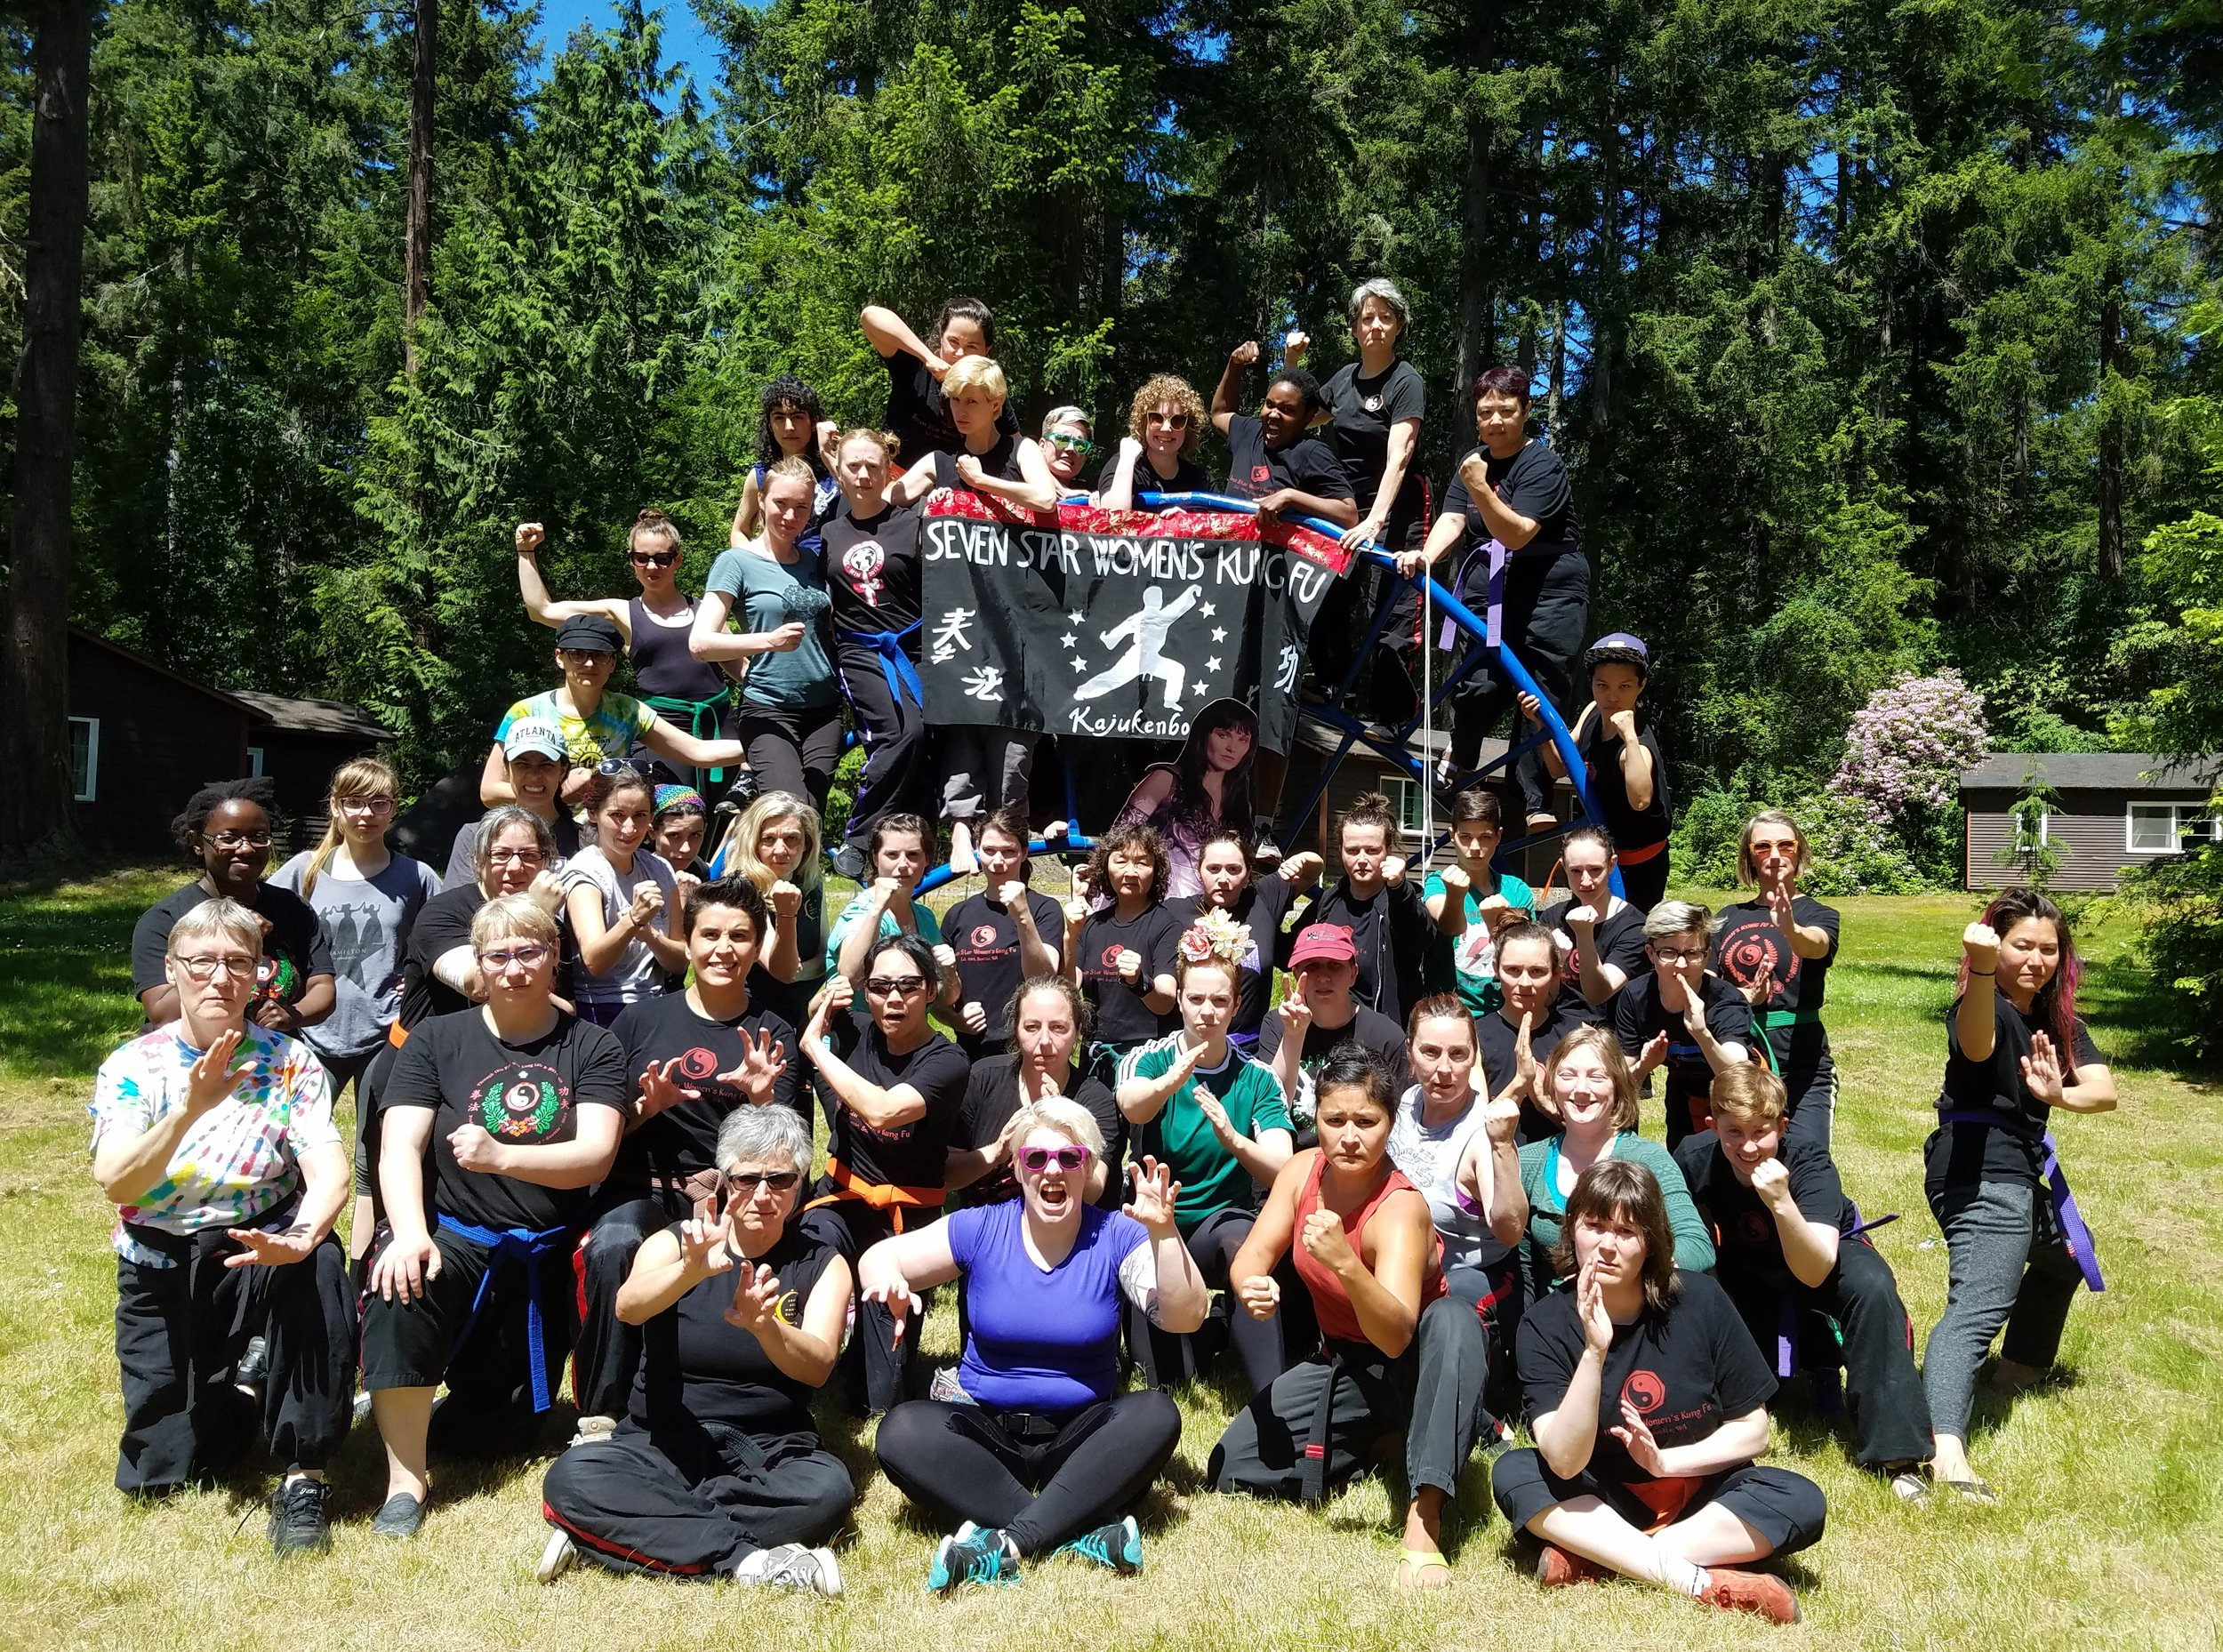 Seven Star Annual Retreat - June 1-2, 2019Camp BUrton, Vashon Island